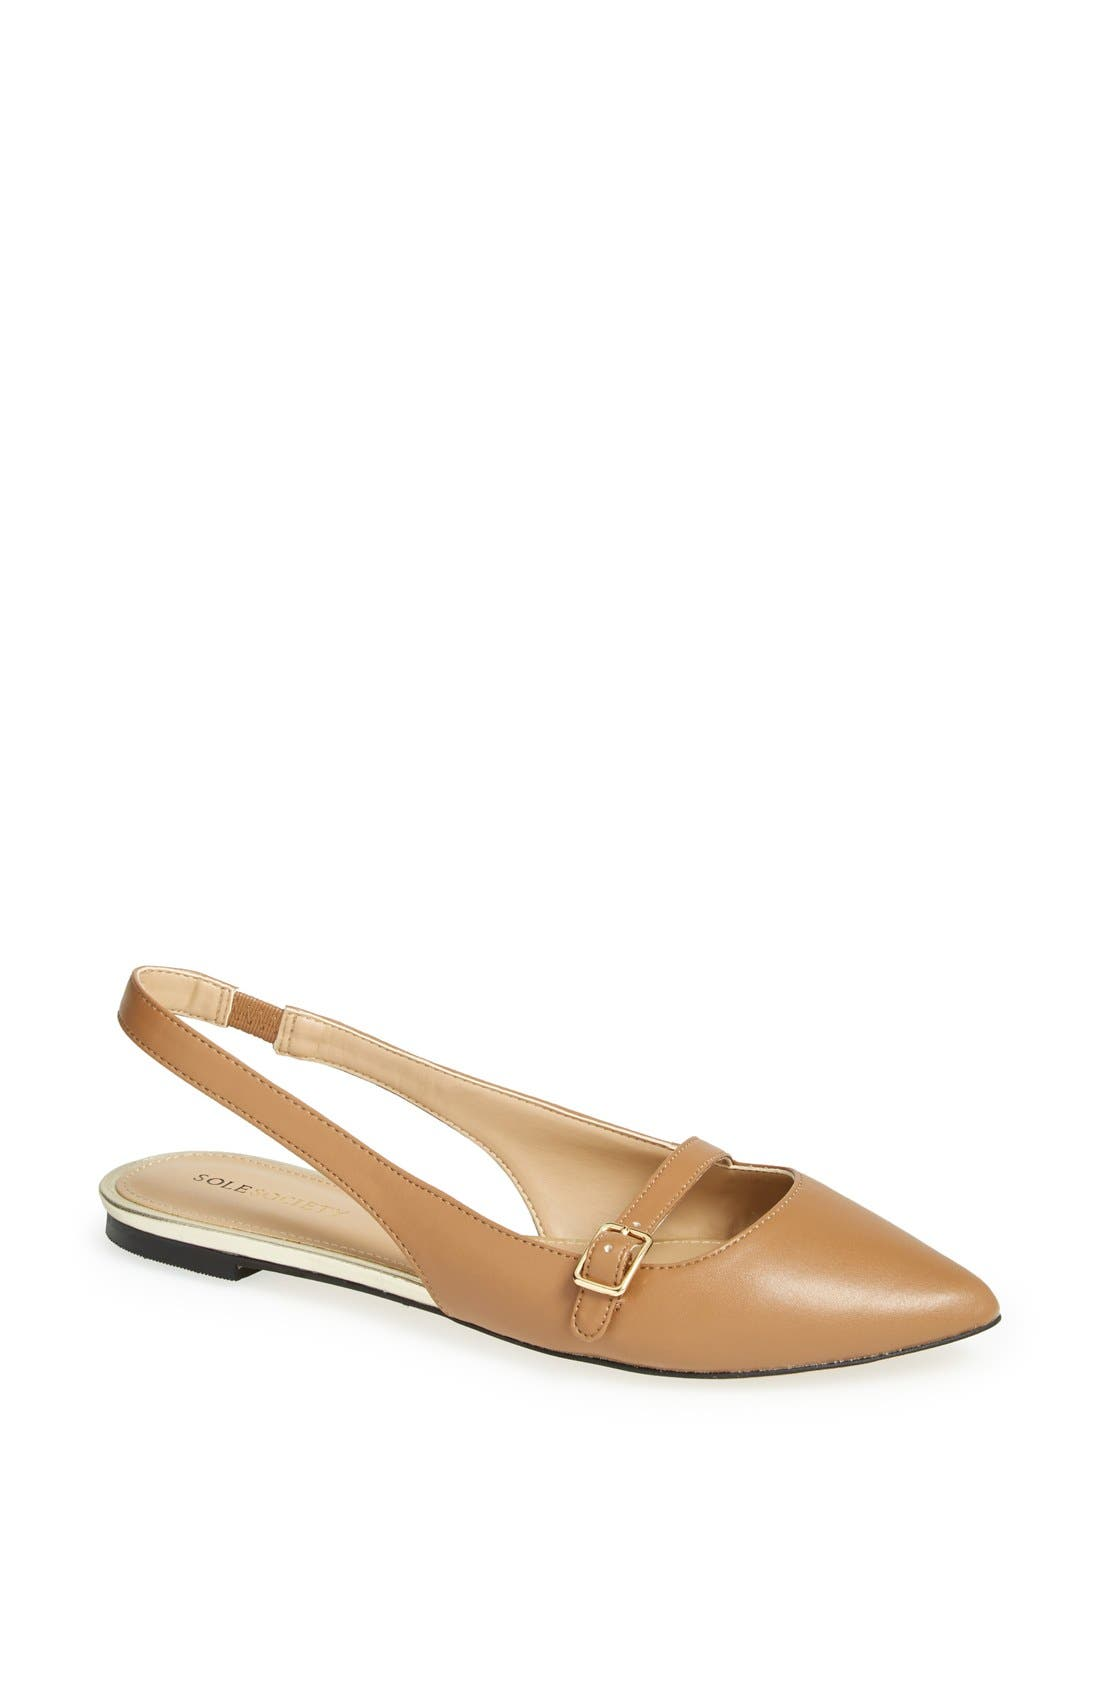 Main Image - Sole Society 'Lynette' Flat